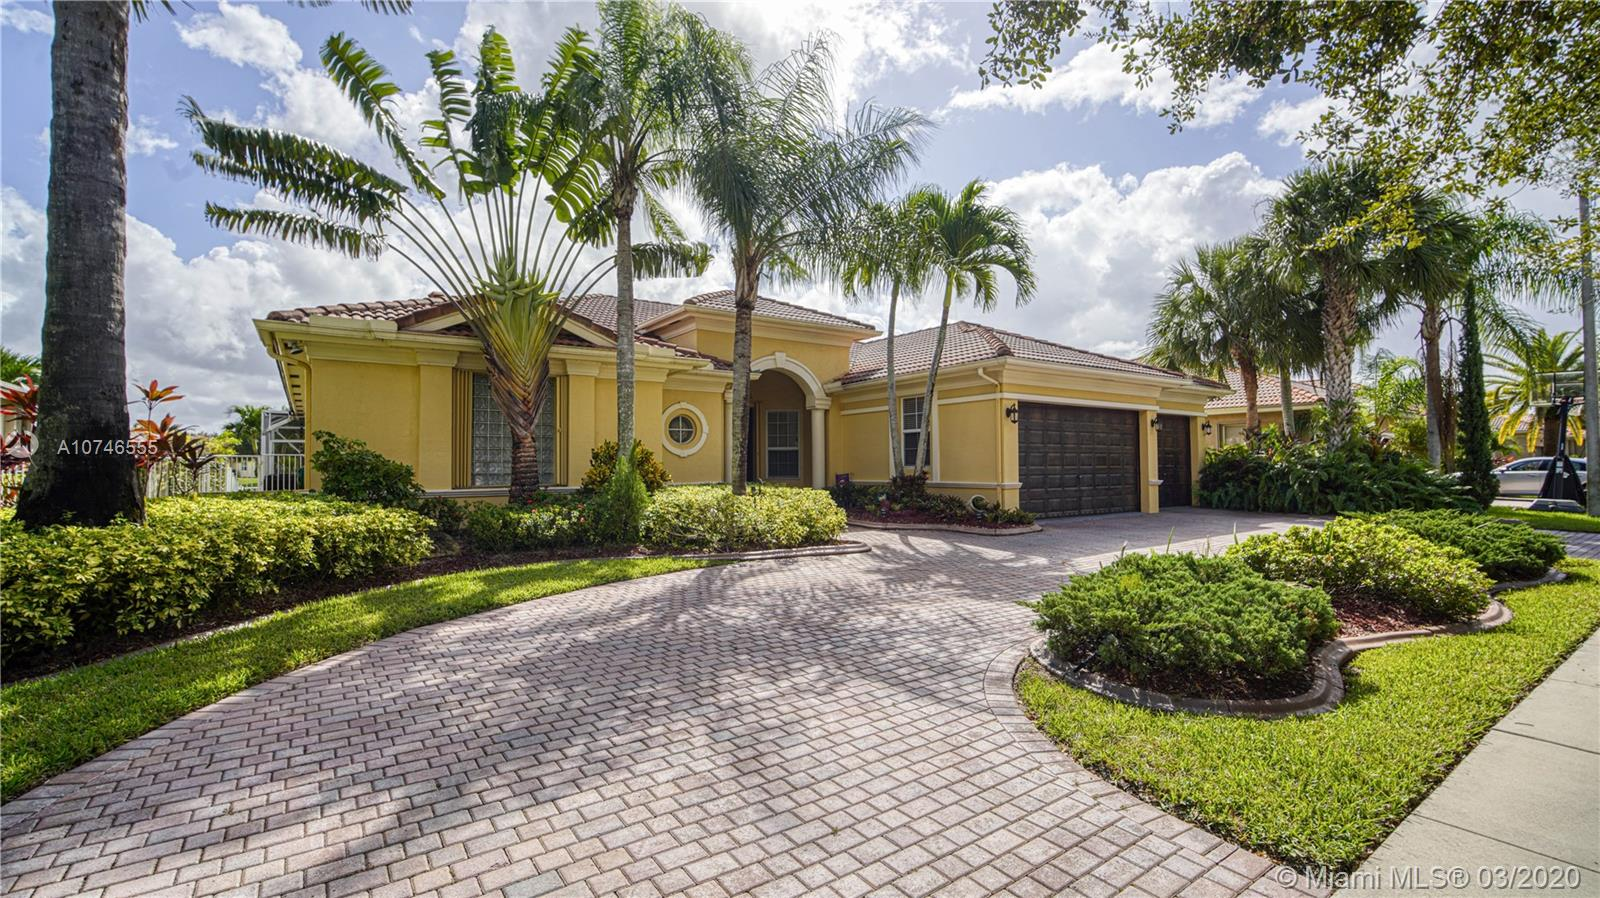 5058  Lakewood Dr  For Sale A10746555, FL